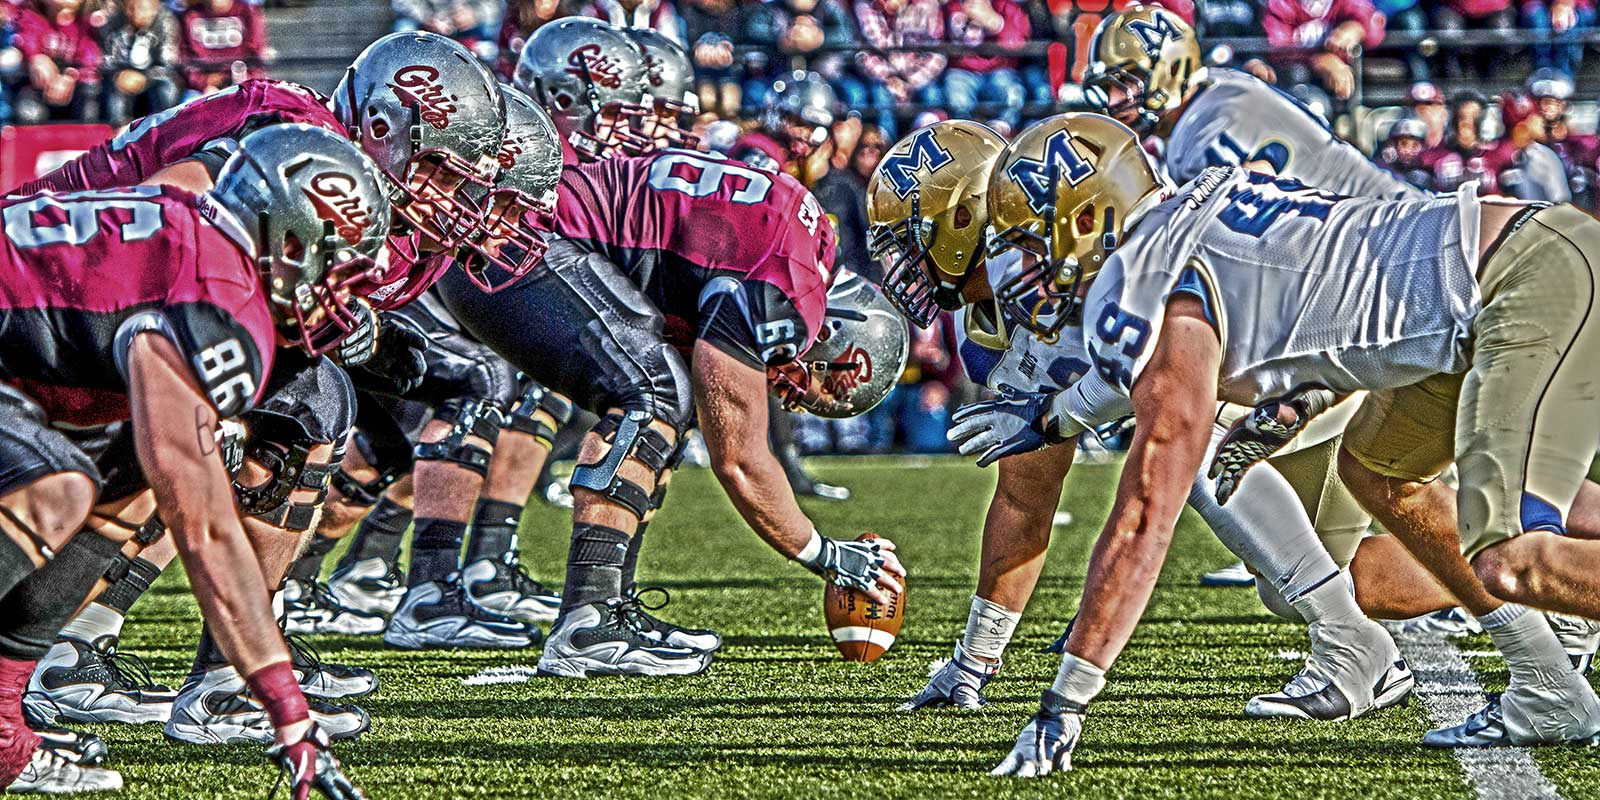 Picture of Montana and Montana State football players lined up against each other